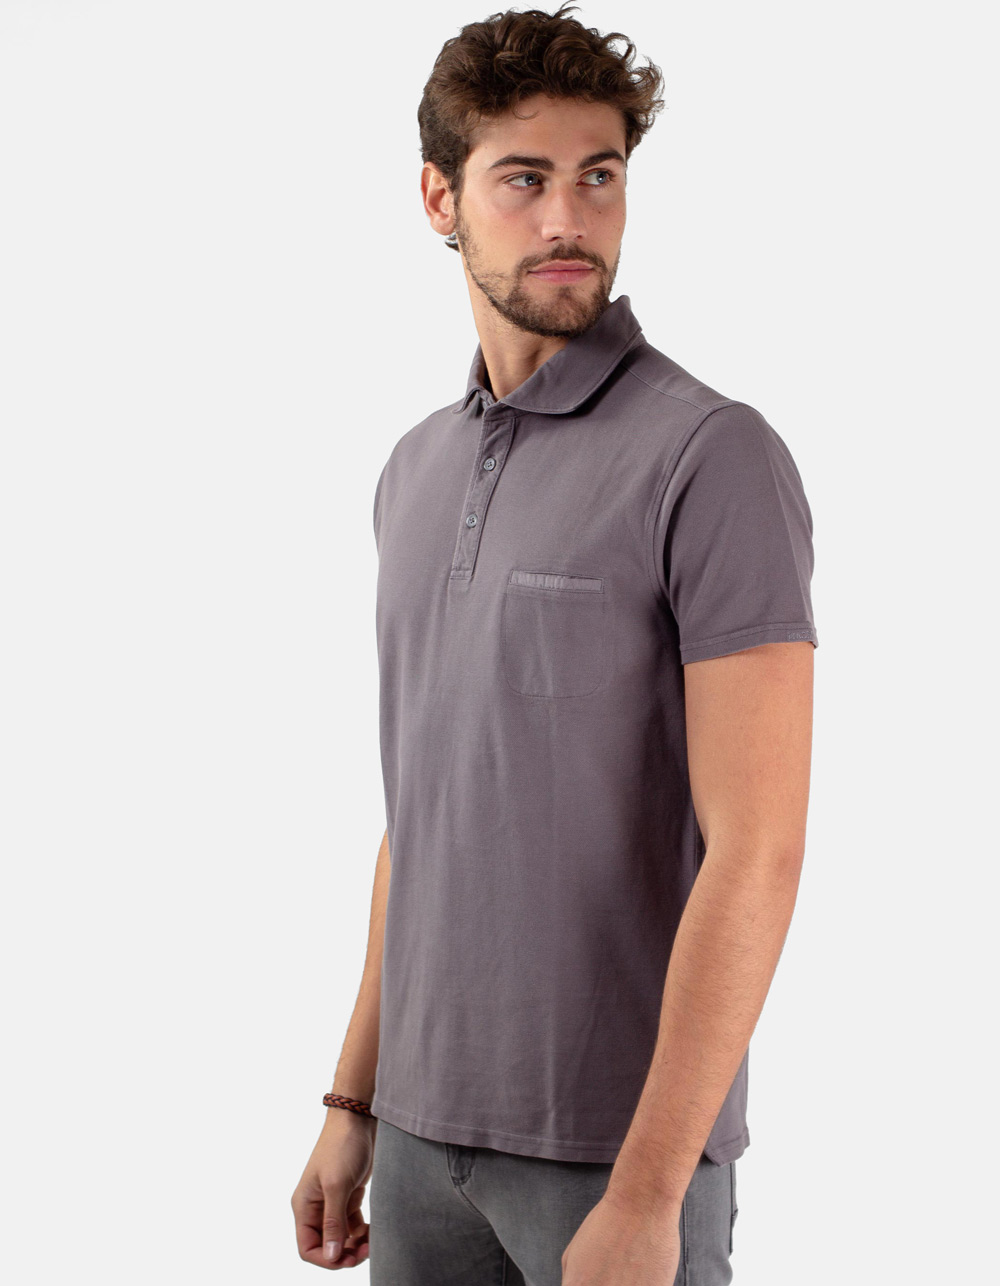 Grey pocket piqué polo